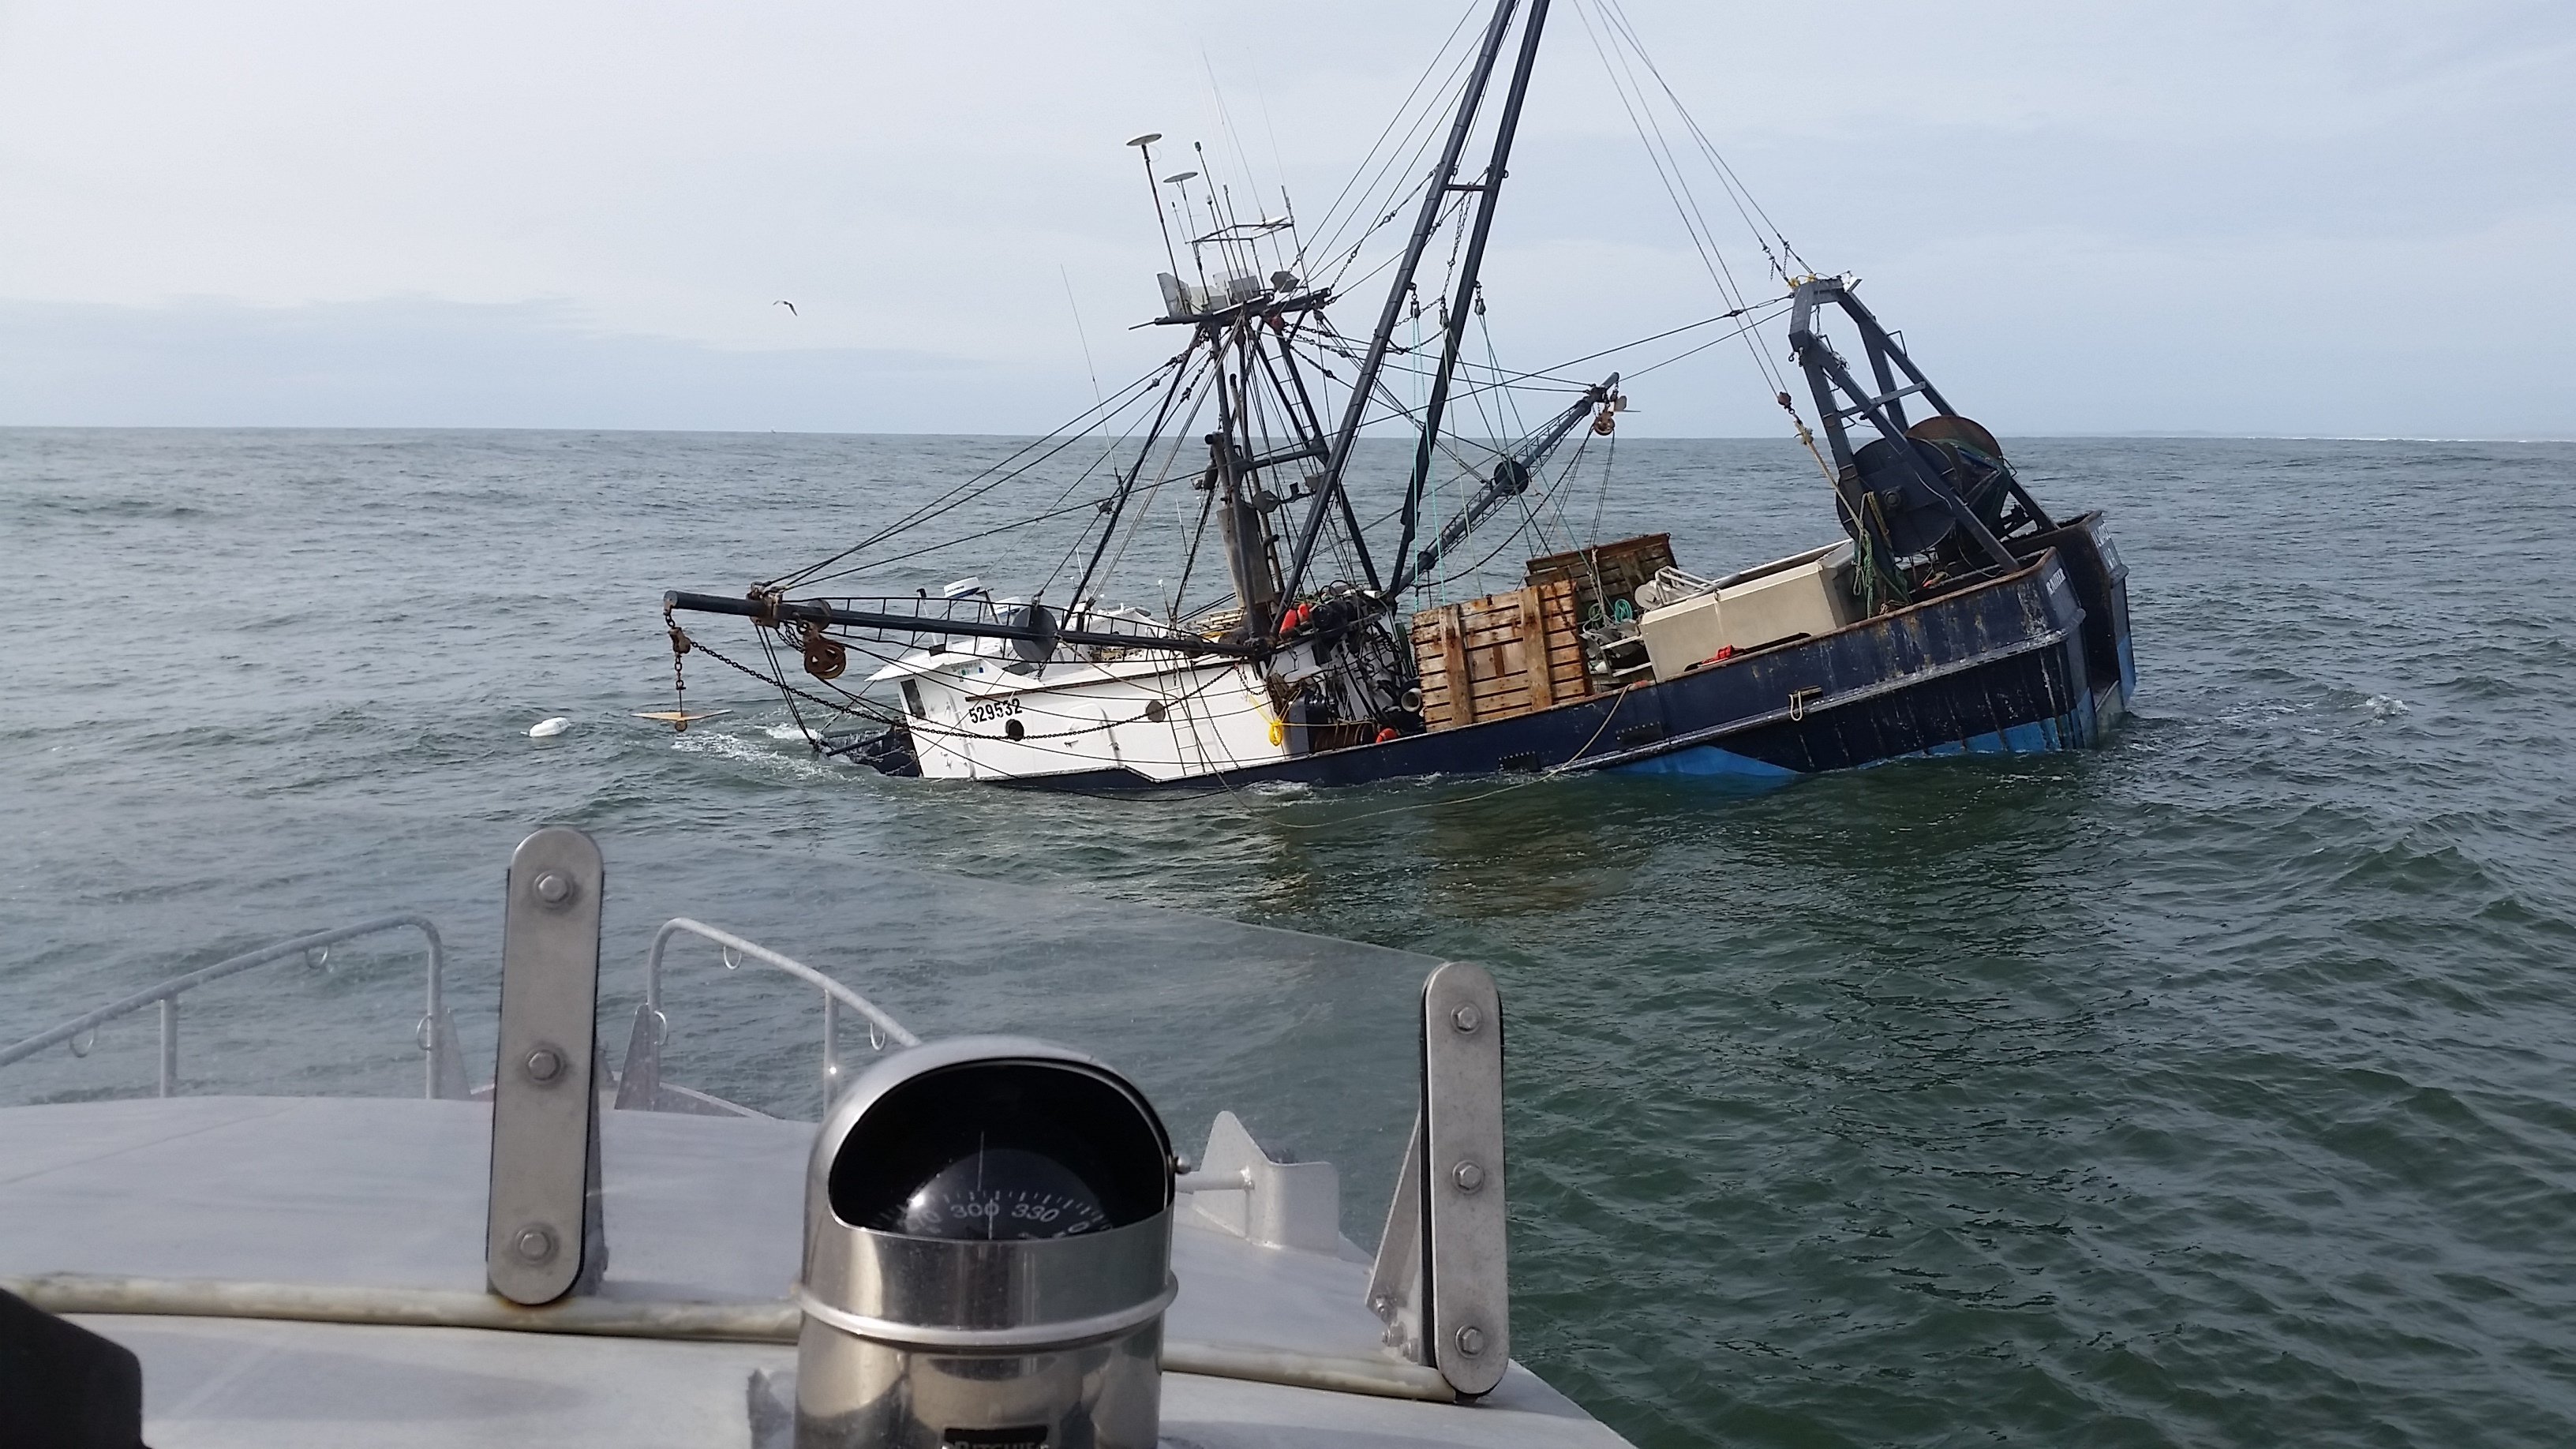 The 74-foot fishing vessel Privateer sinks approximately one mile north of Grays Harbor, Wash. April 15, 2016. The Oil Spill Liability Trust Fund was opened to assess the salvaging of the vessel, which was reported to have a maximum fuel capacity of 6,000 gallons. U.S. Coast Guard photo by Petty Officer 2nd Class Jacob Hylkema.